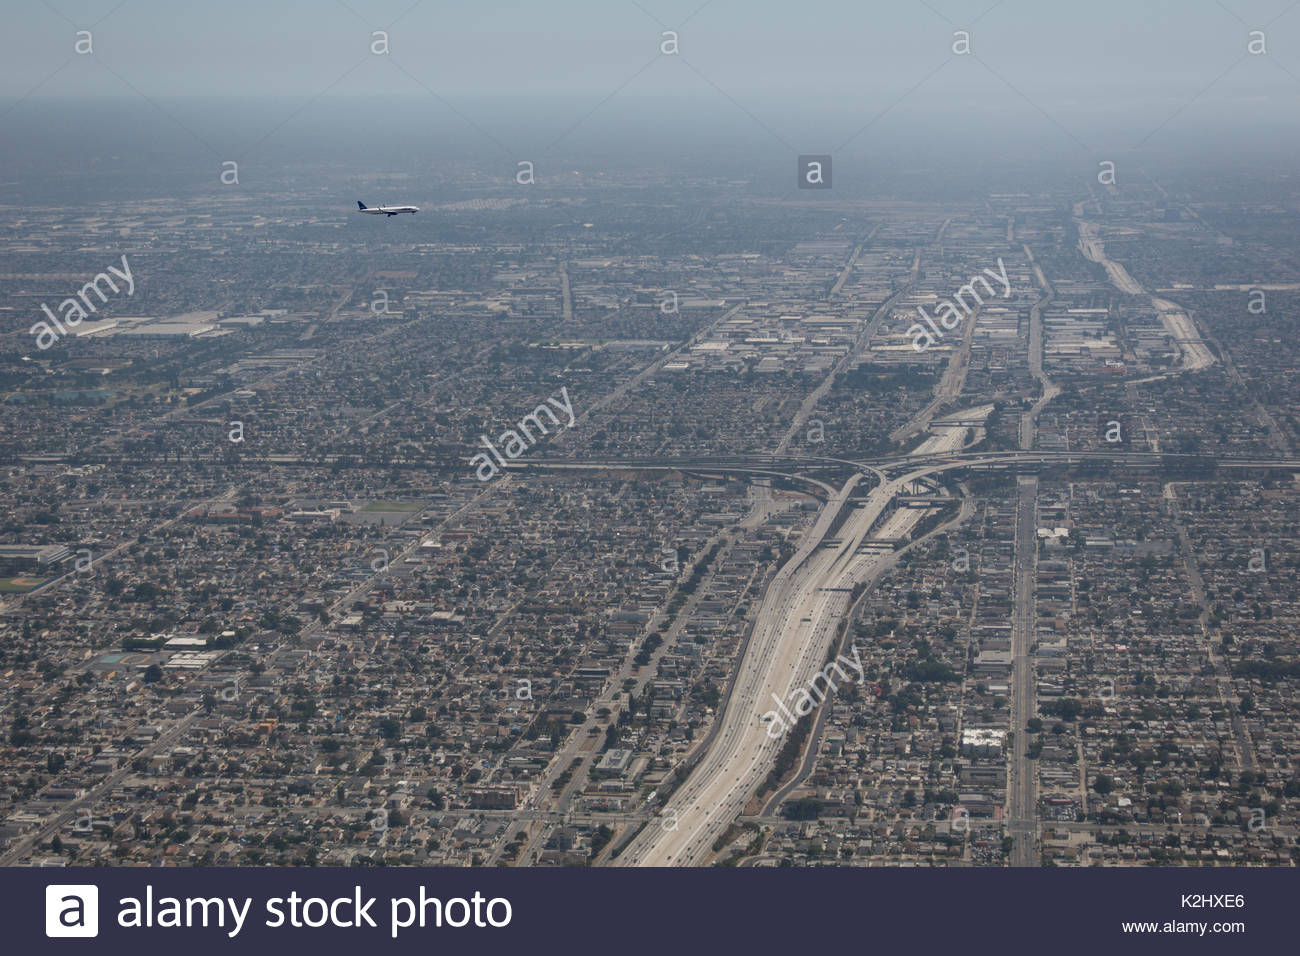 A commercial airplane is on approach to LAX (Los Angeles International Airport) over Interstate 5 highway in California. - Stock Image